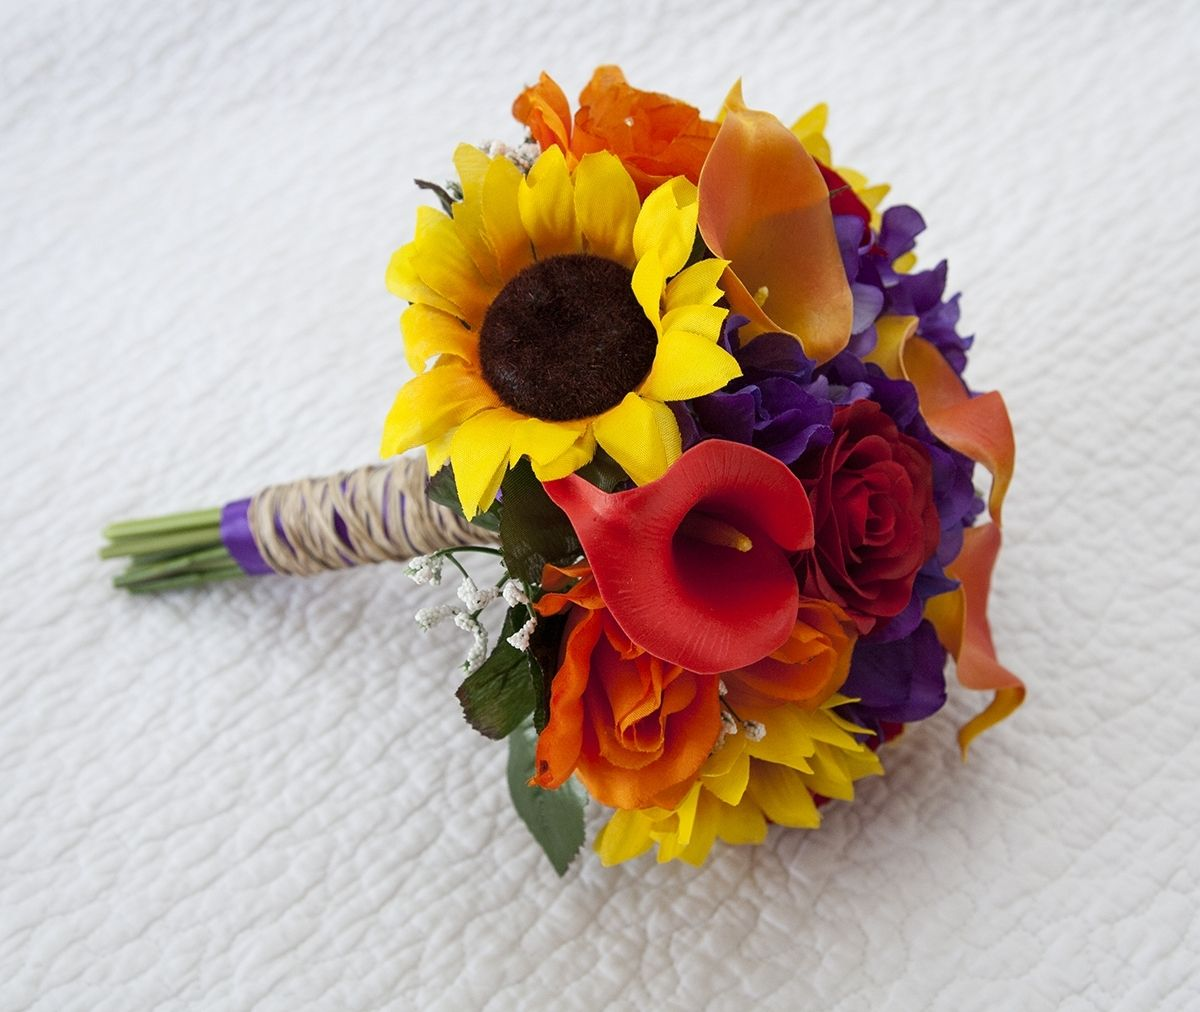 Sunflowers real touch roses and calla lilies autumn bouquet perfect sunflowers real touch roses and calla lilies autumn bouquet perfect for fall weddings izmirmasajfo